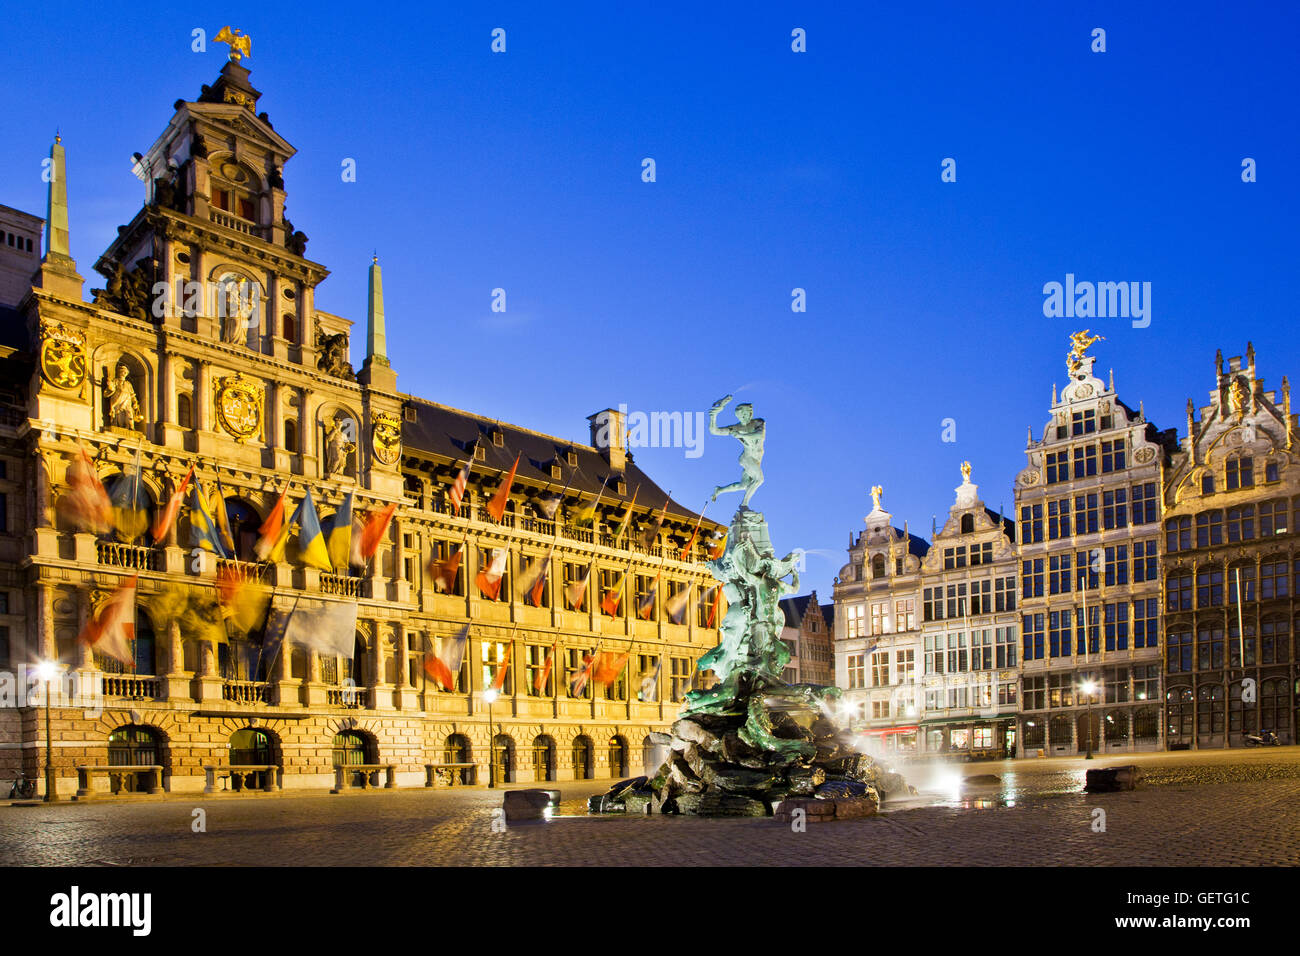 Brabo fountain and medieval houses in the Grote Martk in Antwerp. - Stock Image